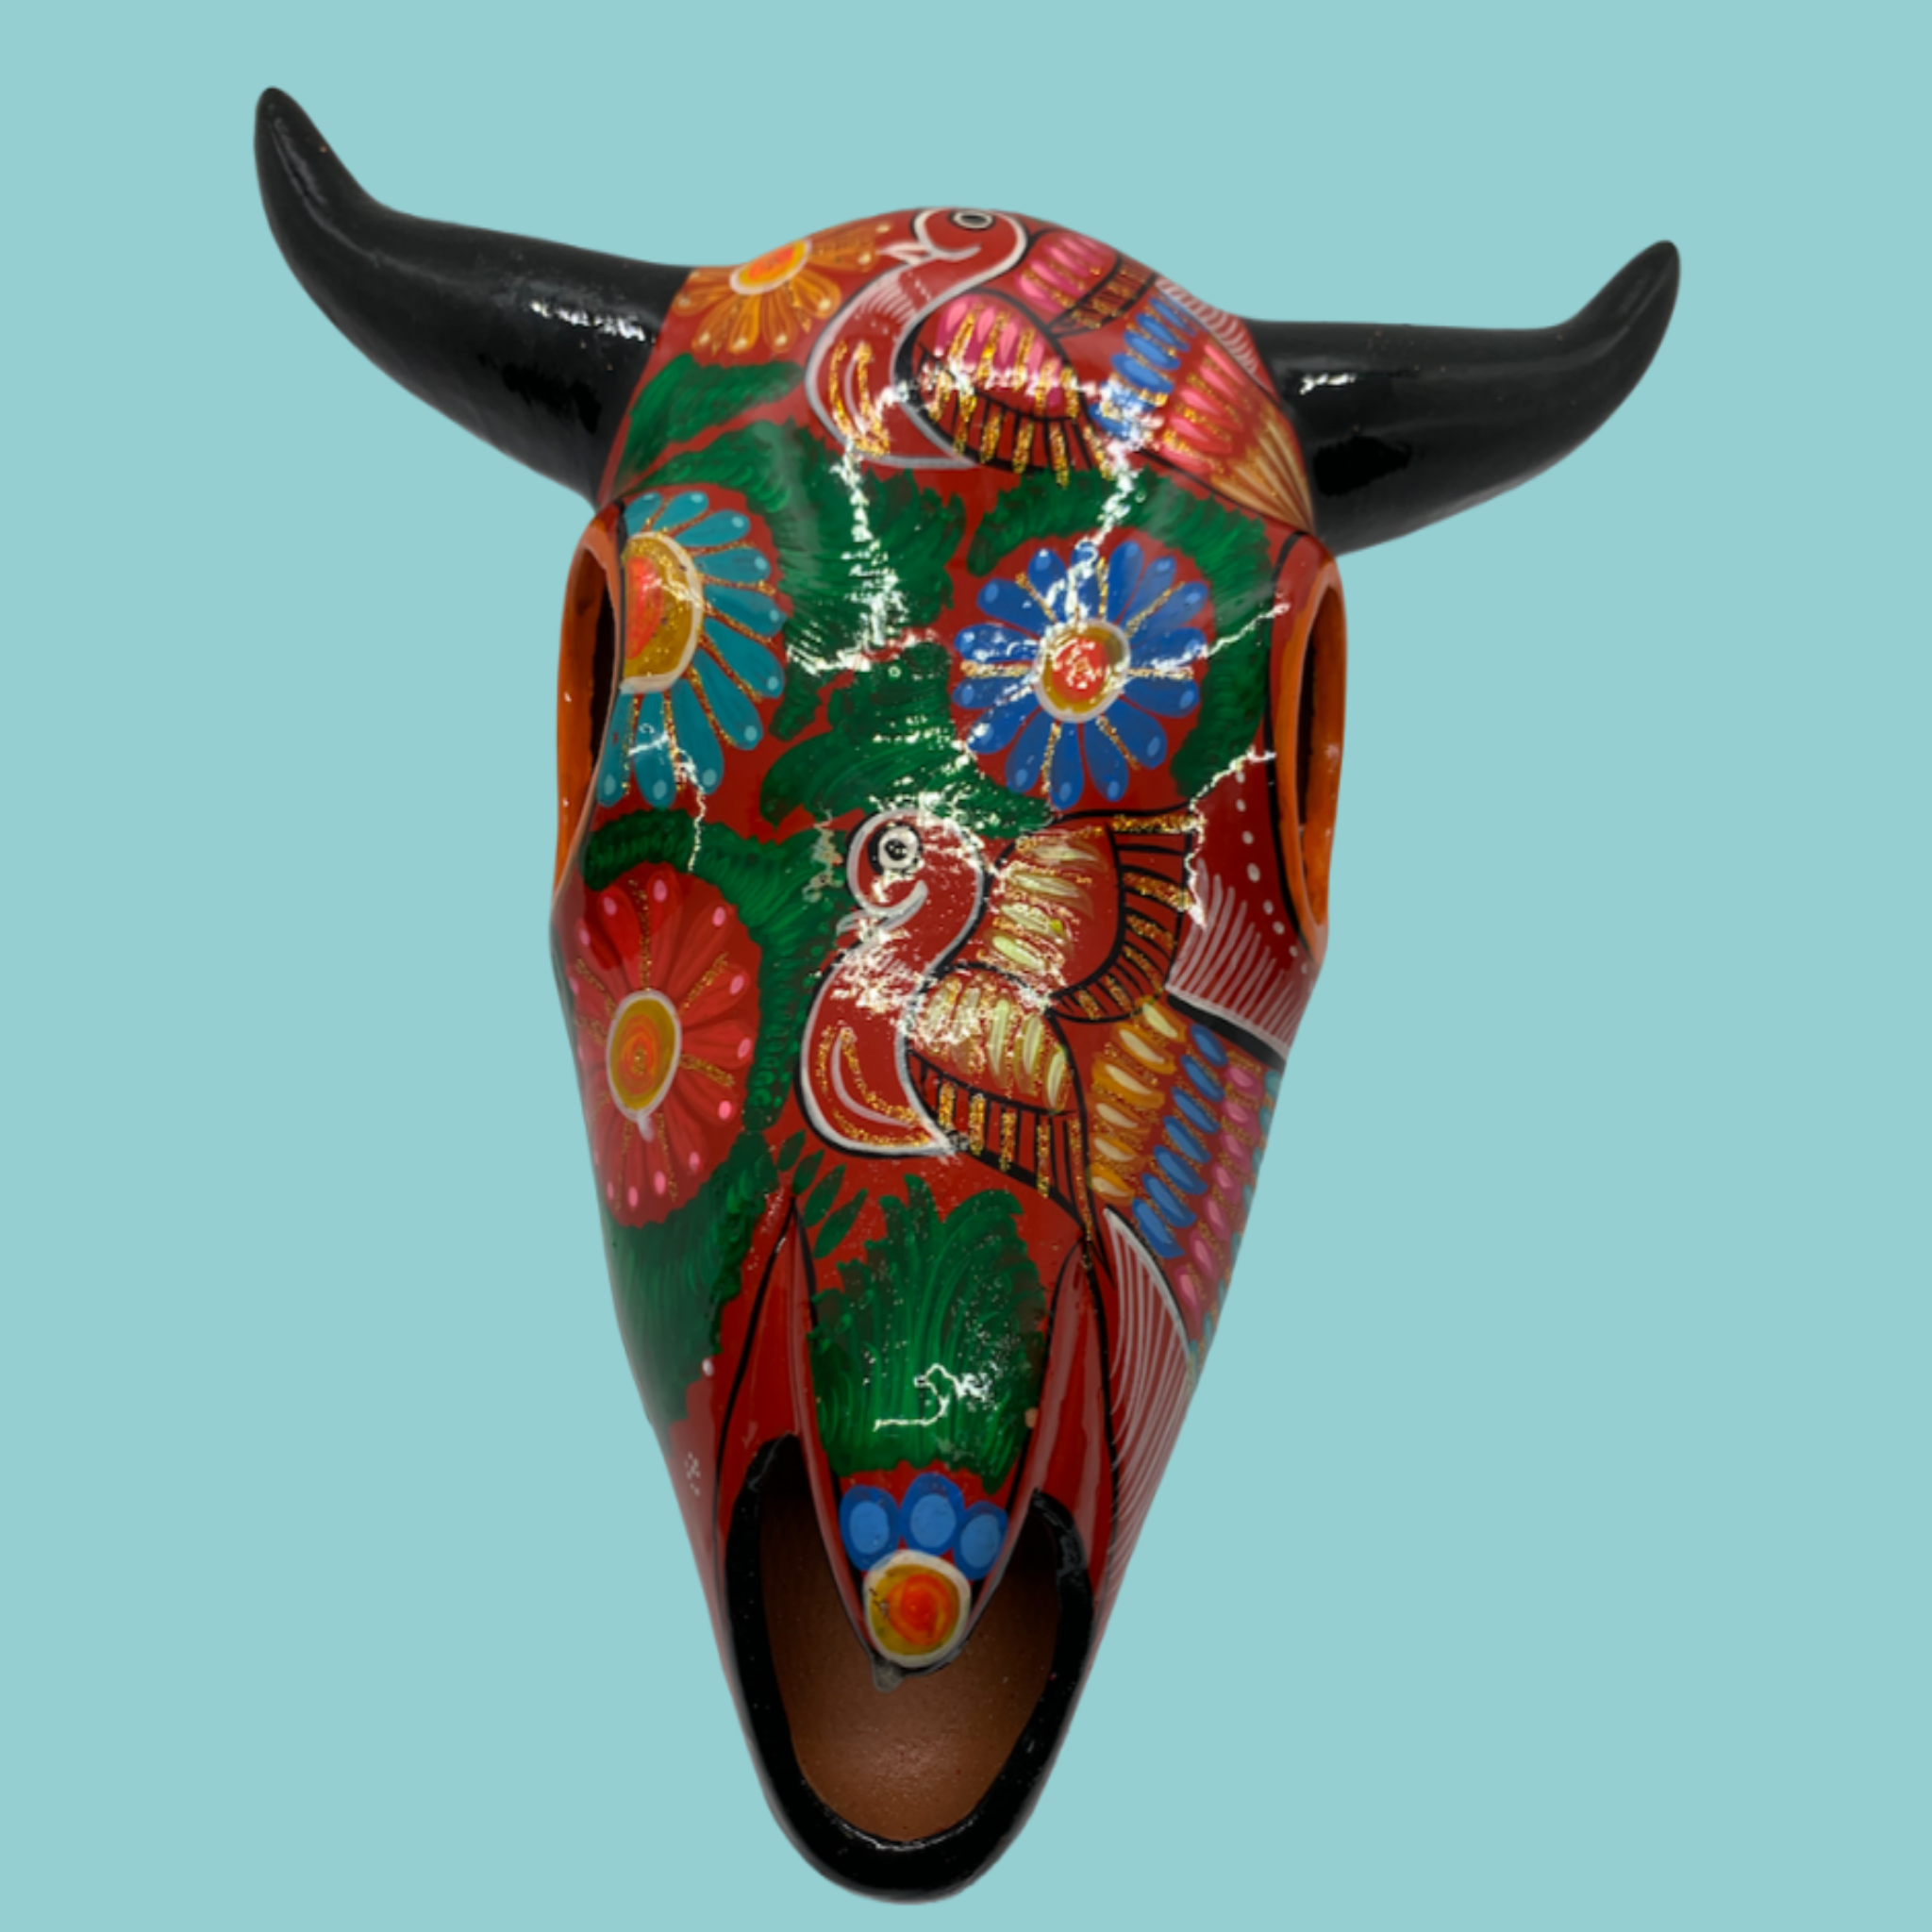 Decorated Ceramic Cow Skull